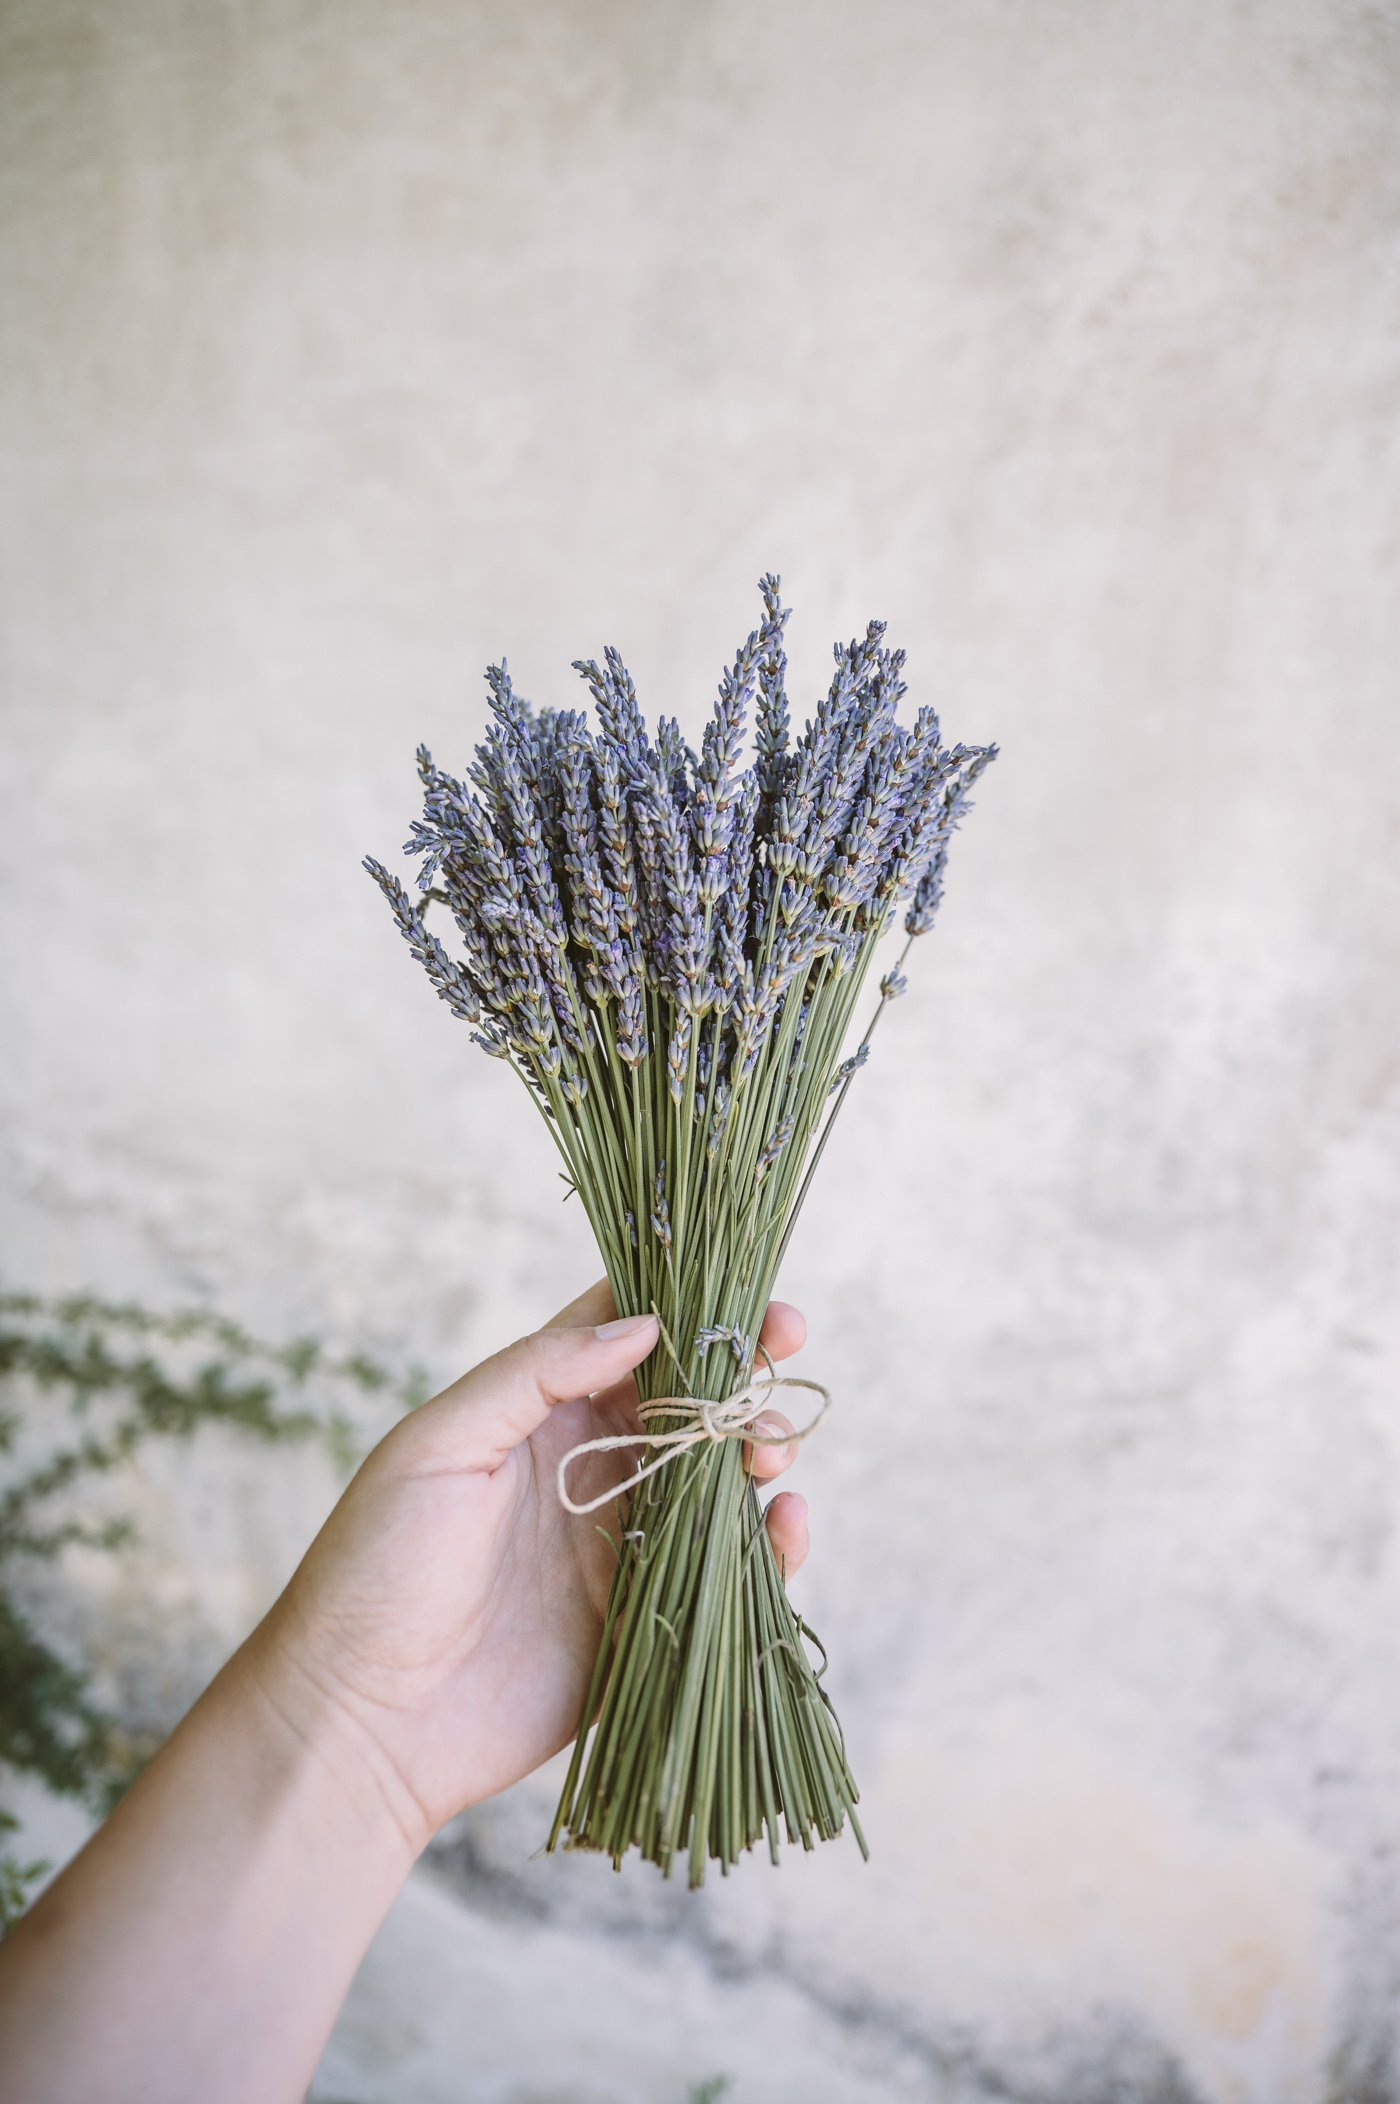 Lavender festival at Wunsum lavender farm in Kitzeck in Southern Styria